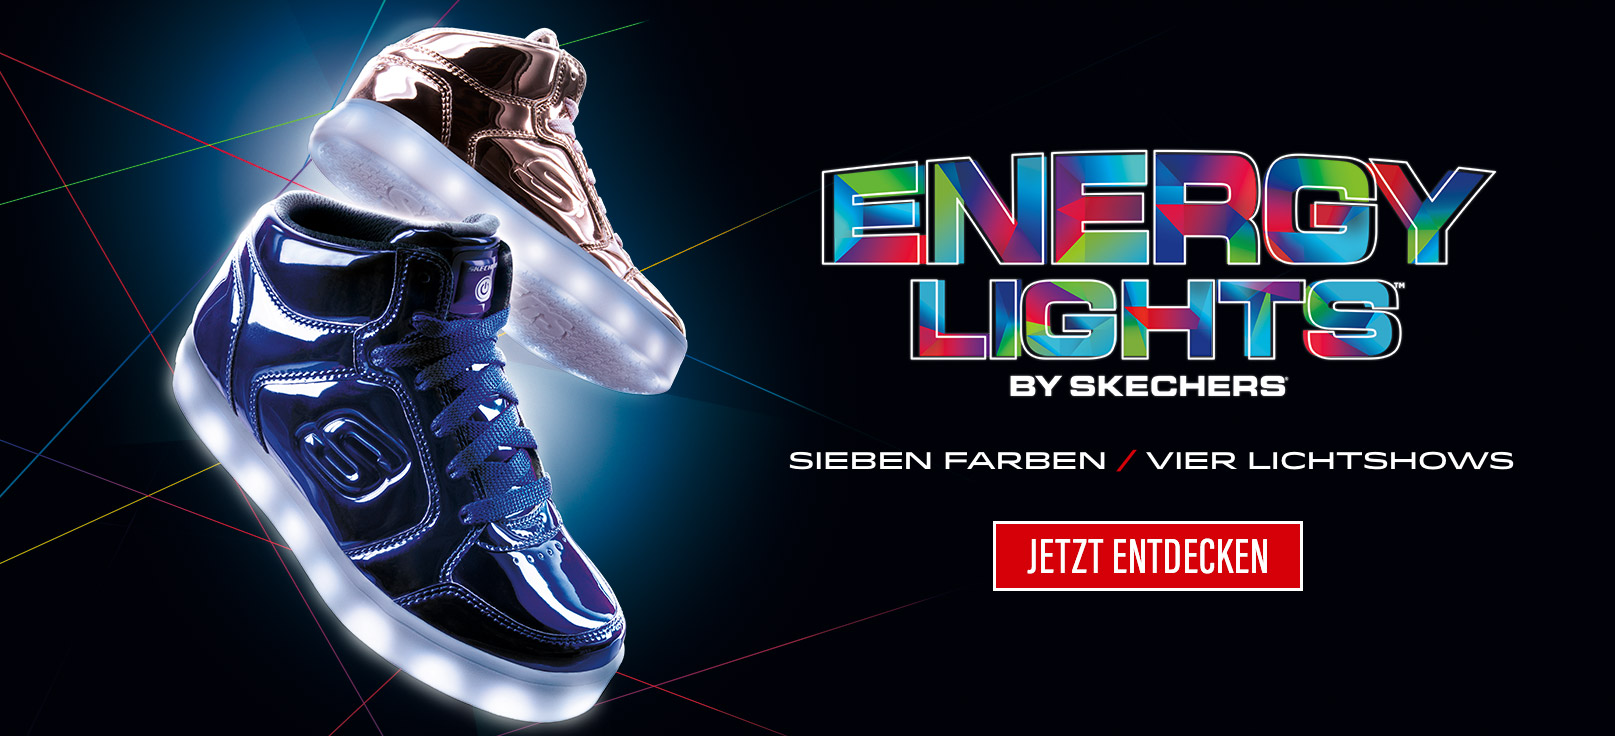 Kaufe Skechers Energy Lights für Kinder